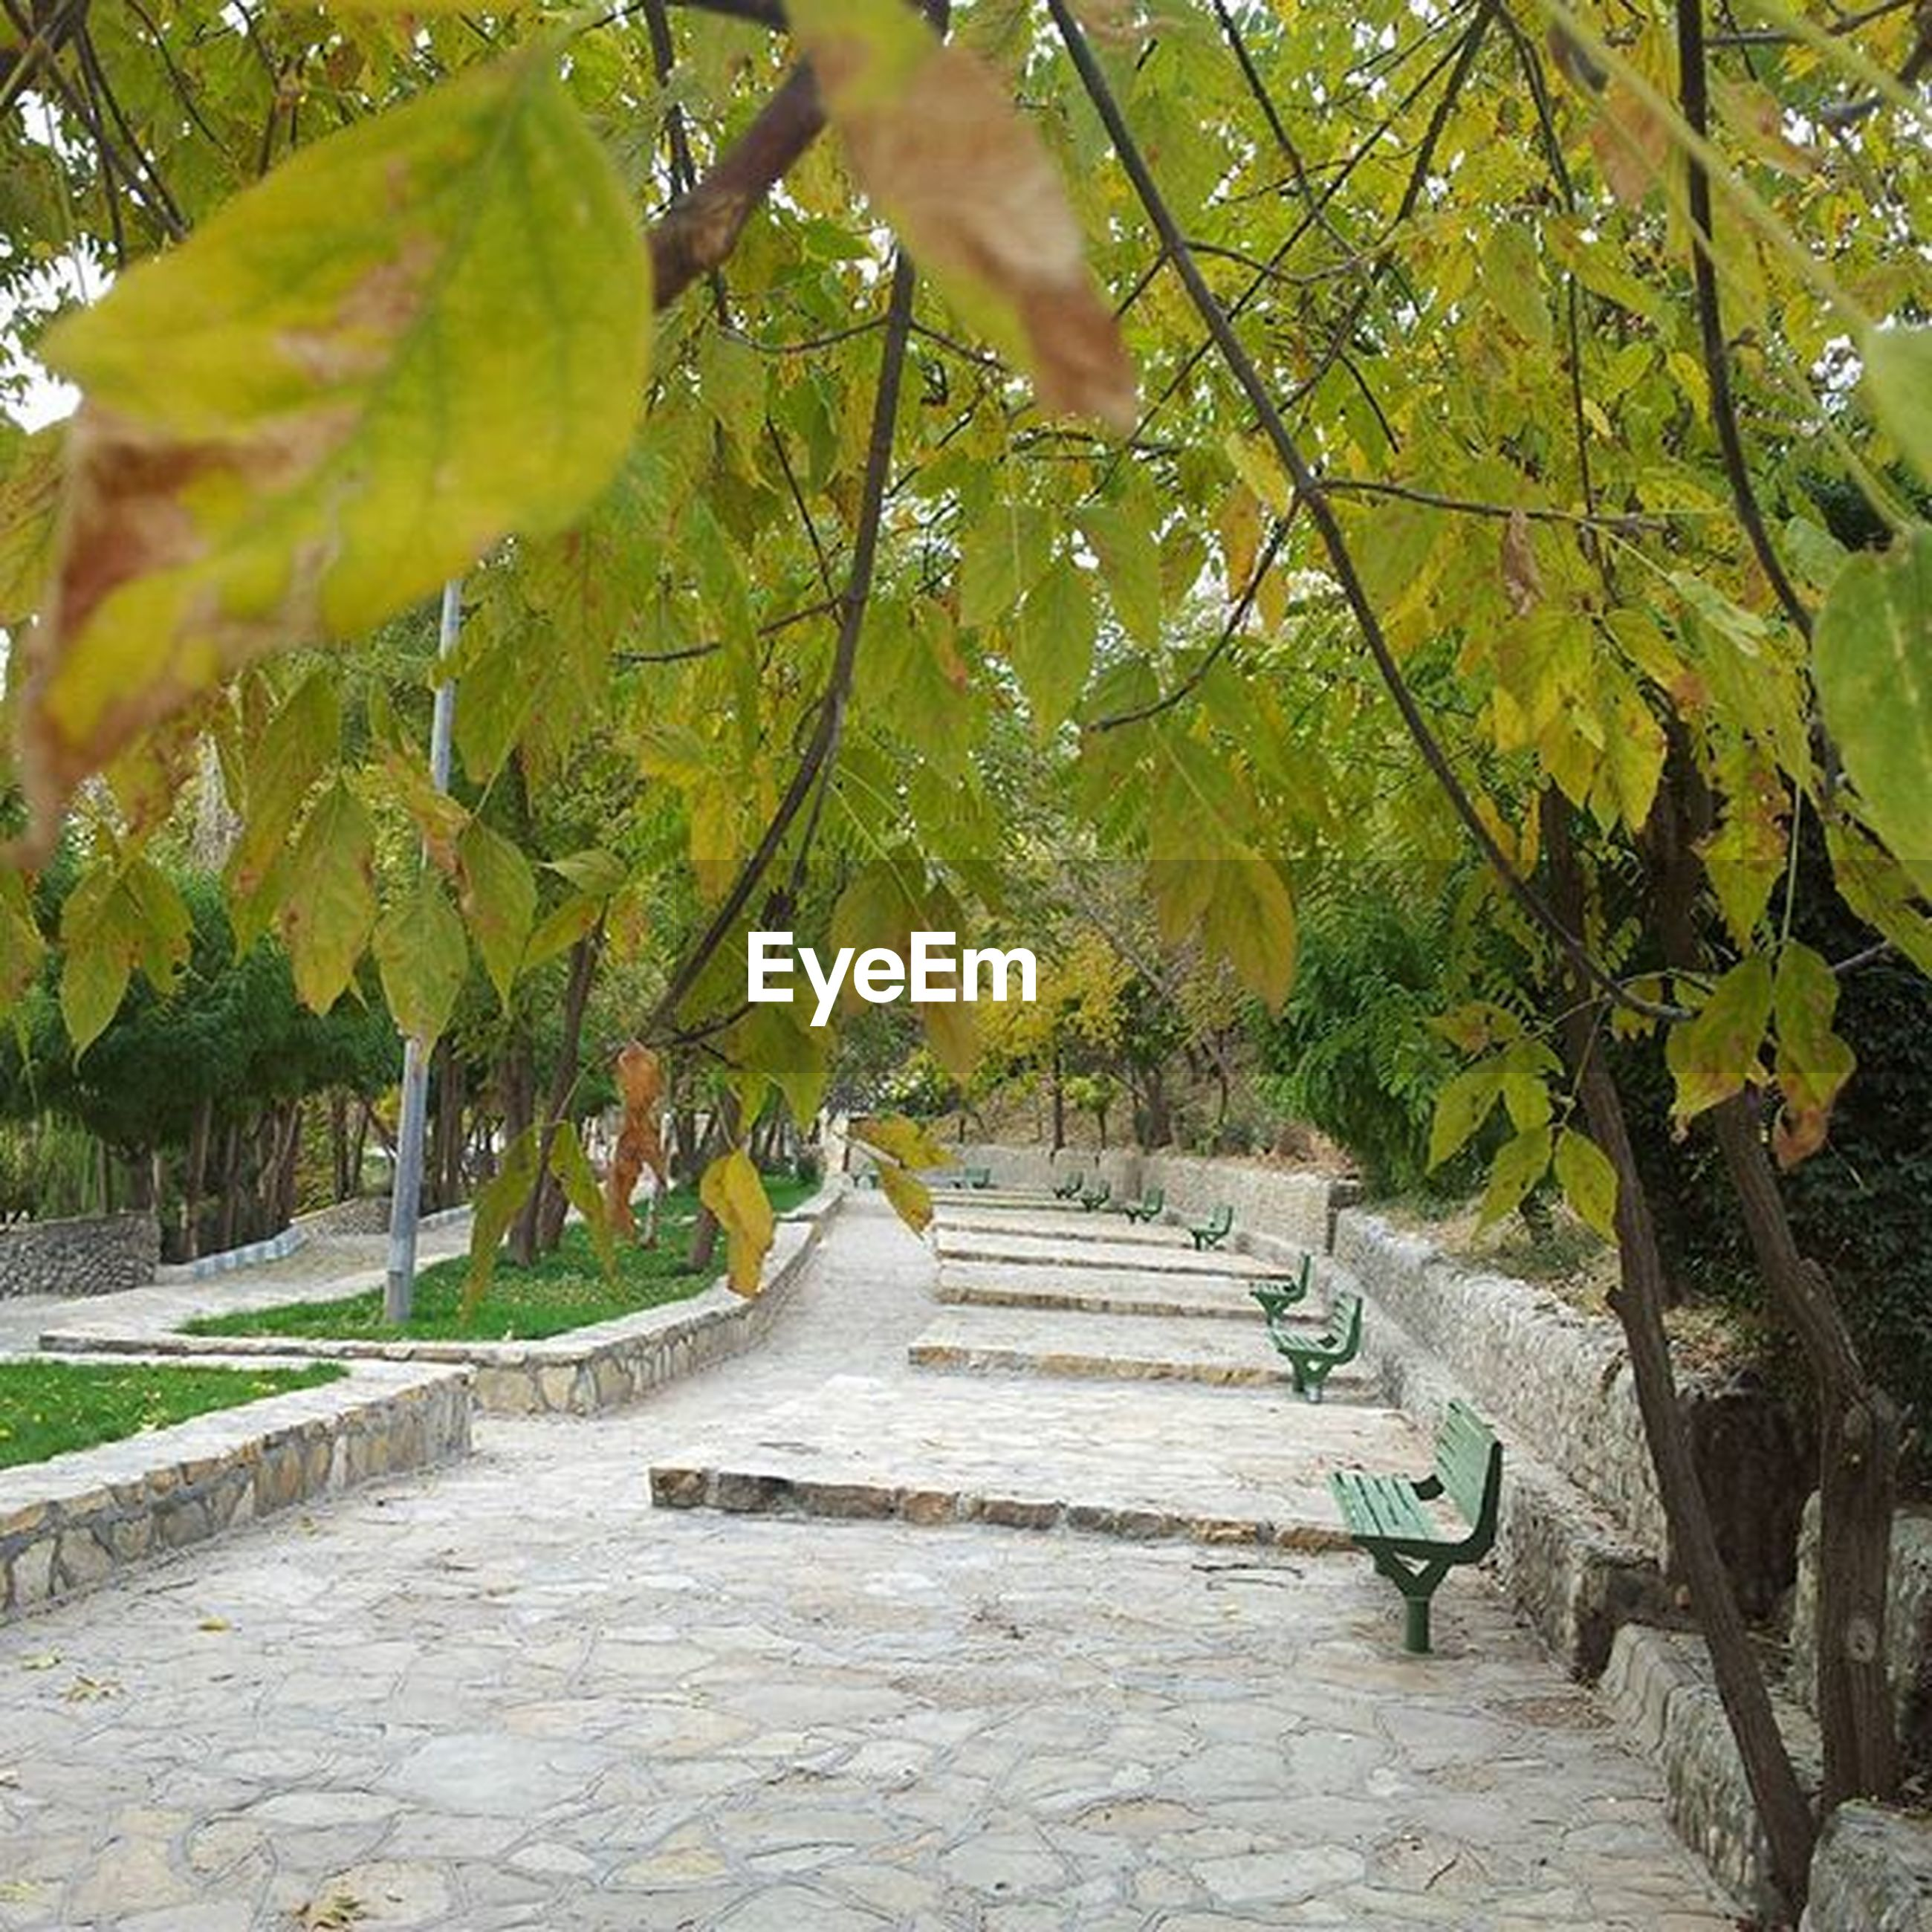 tree, the way forward, leaf, growth, branch, footpath, nature, green color, tranquility, walkway, park - man made space, autumn, beauty in nature, day, outdoors, sunlight, pathway, diminishing perspective, tree trunk, change